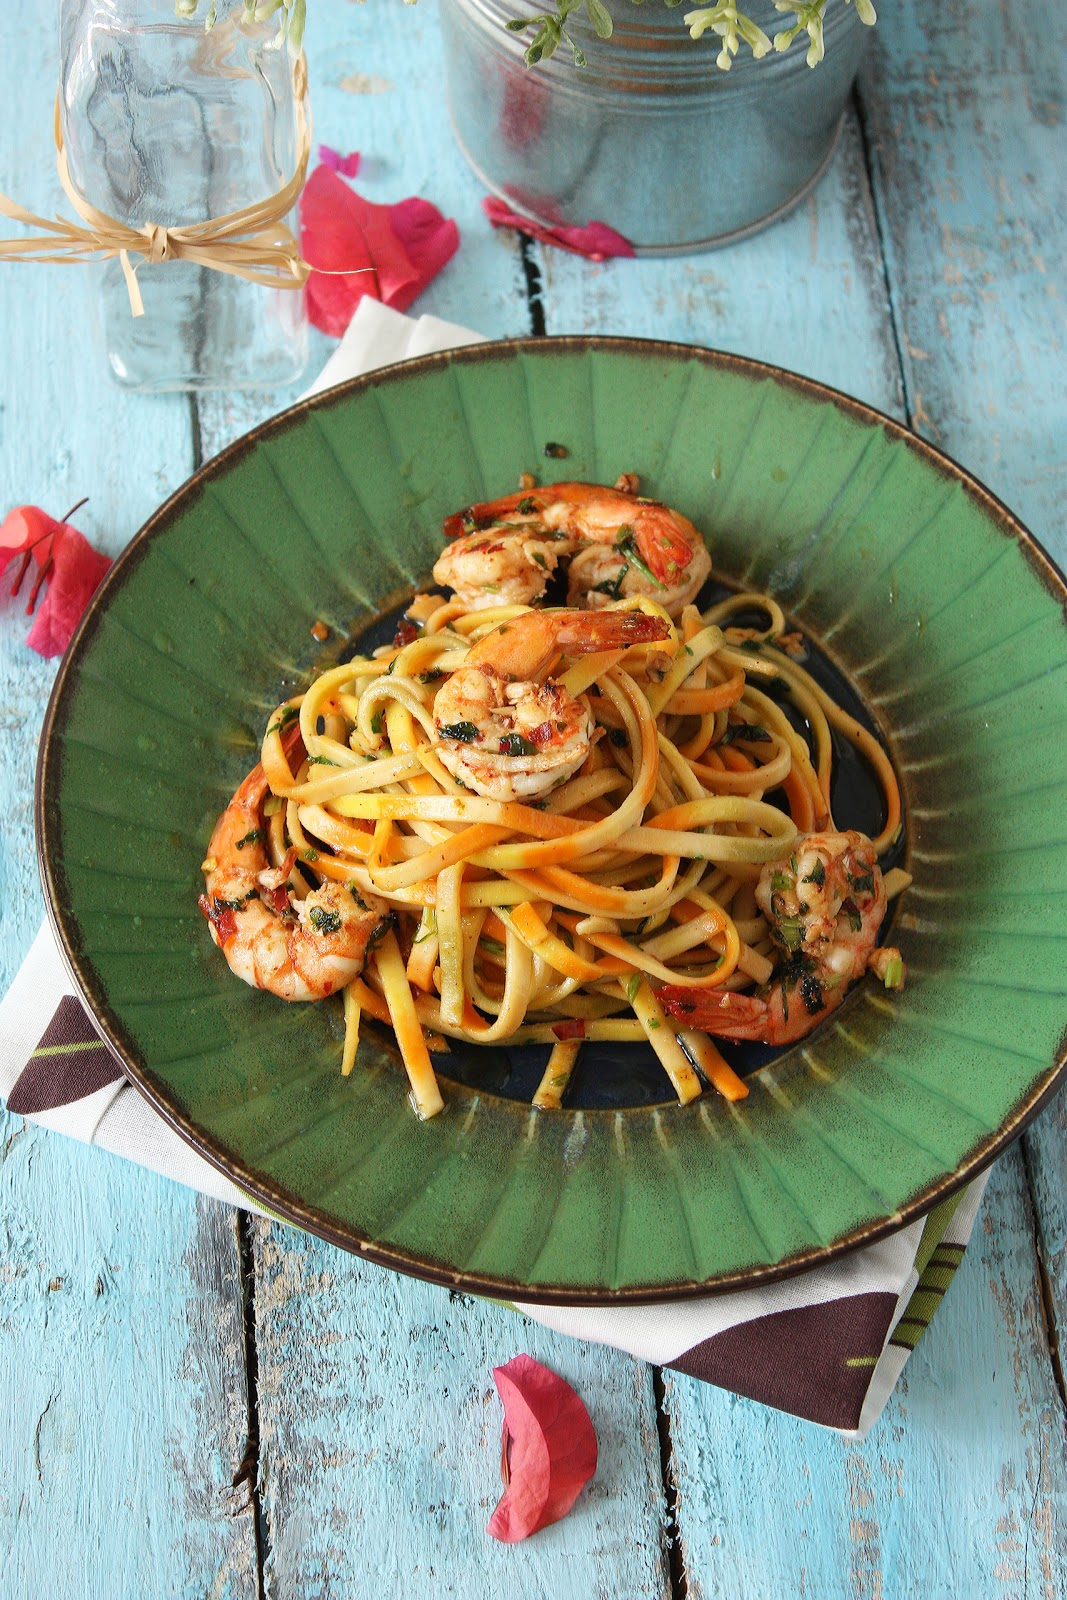 Cherry on a Cake: RACHAEL RAY'S AGLIO OLIO (GARLIC & OIL) WITH SPICY SHRIMPS & SWEET PRESENTS